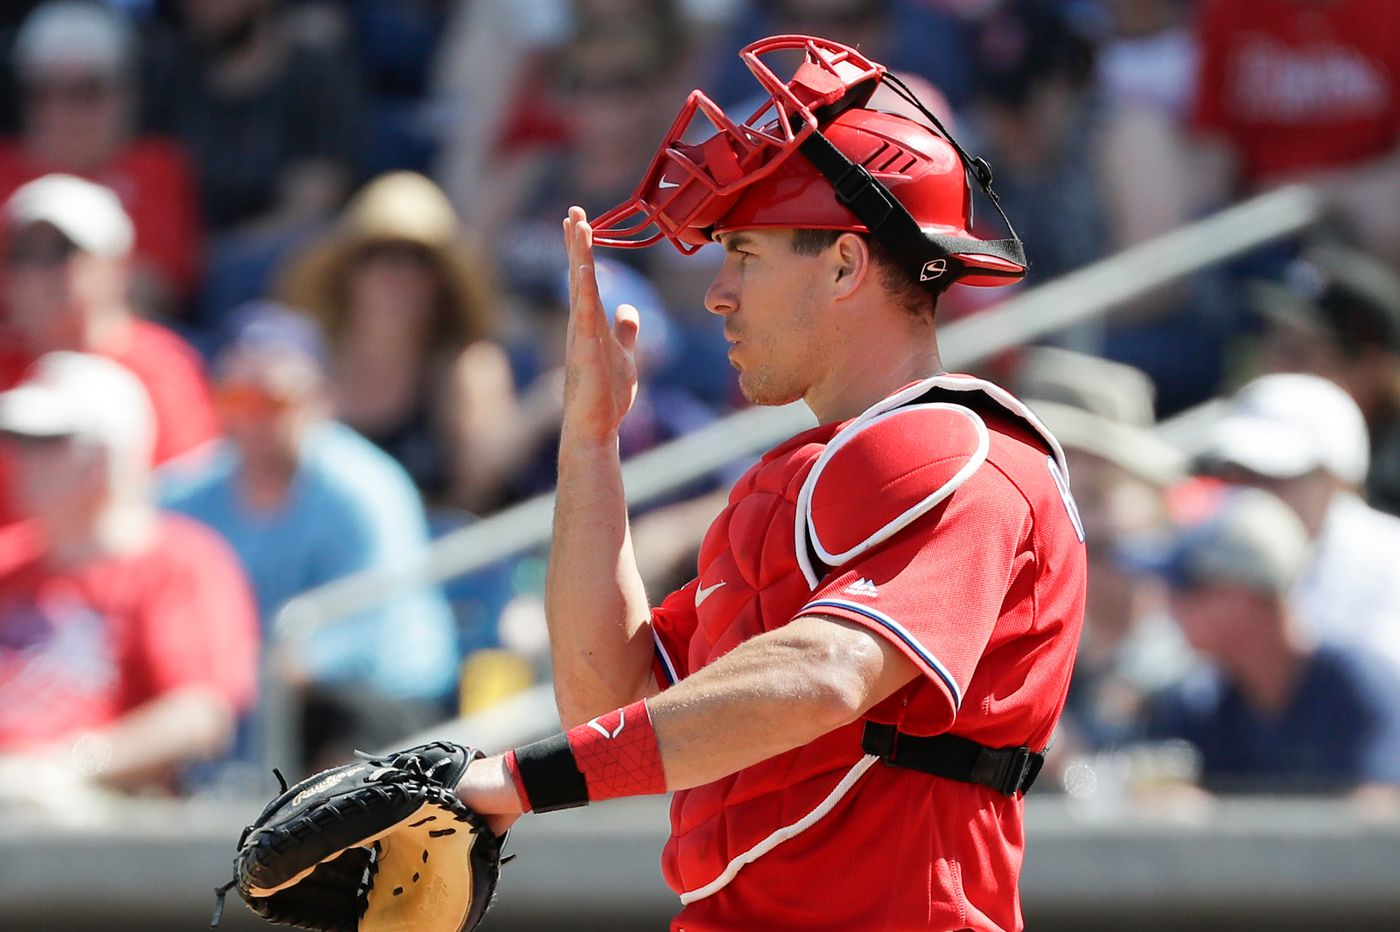 J.T. Realmuto makes under-the-radar contribution to Phillies' season-opening win   Extra Innings